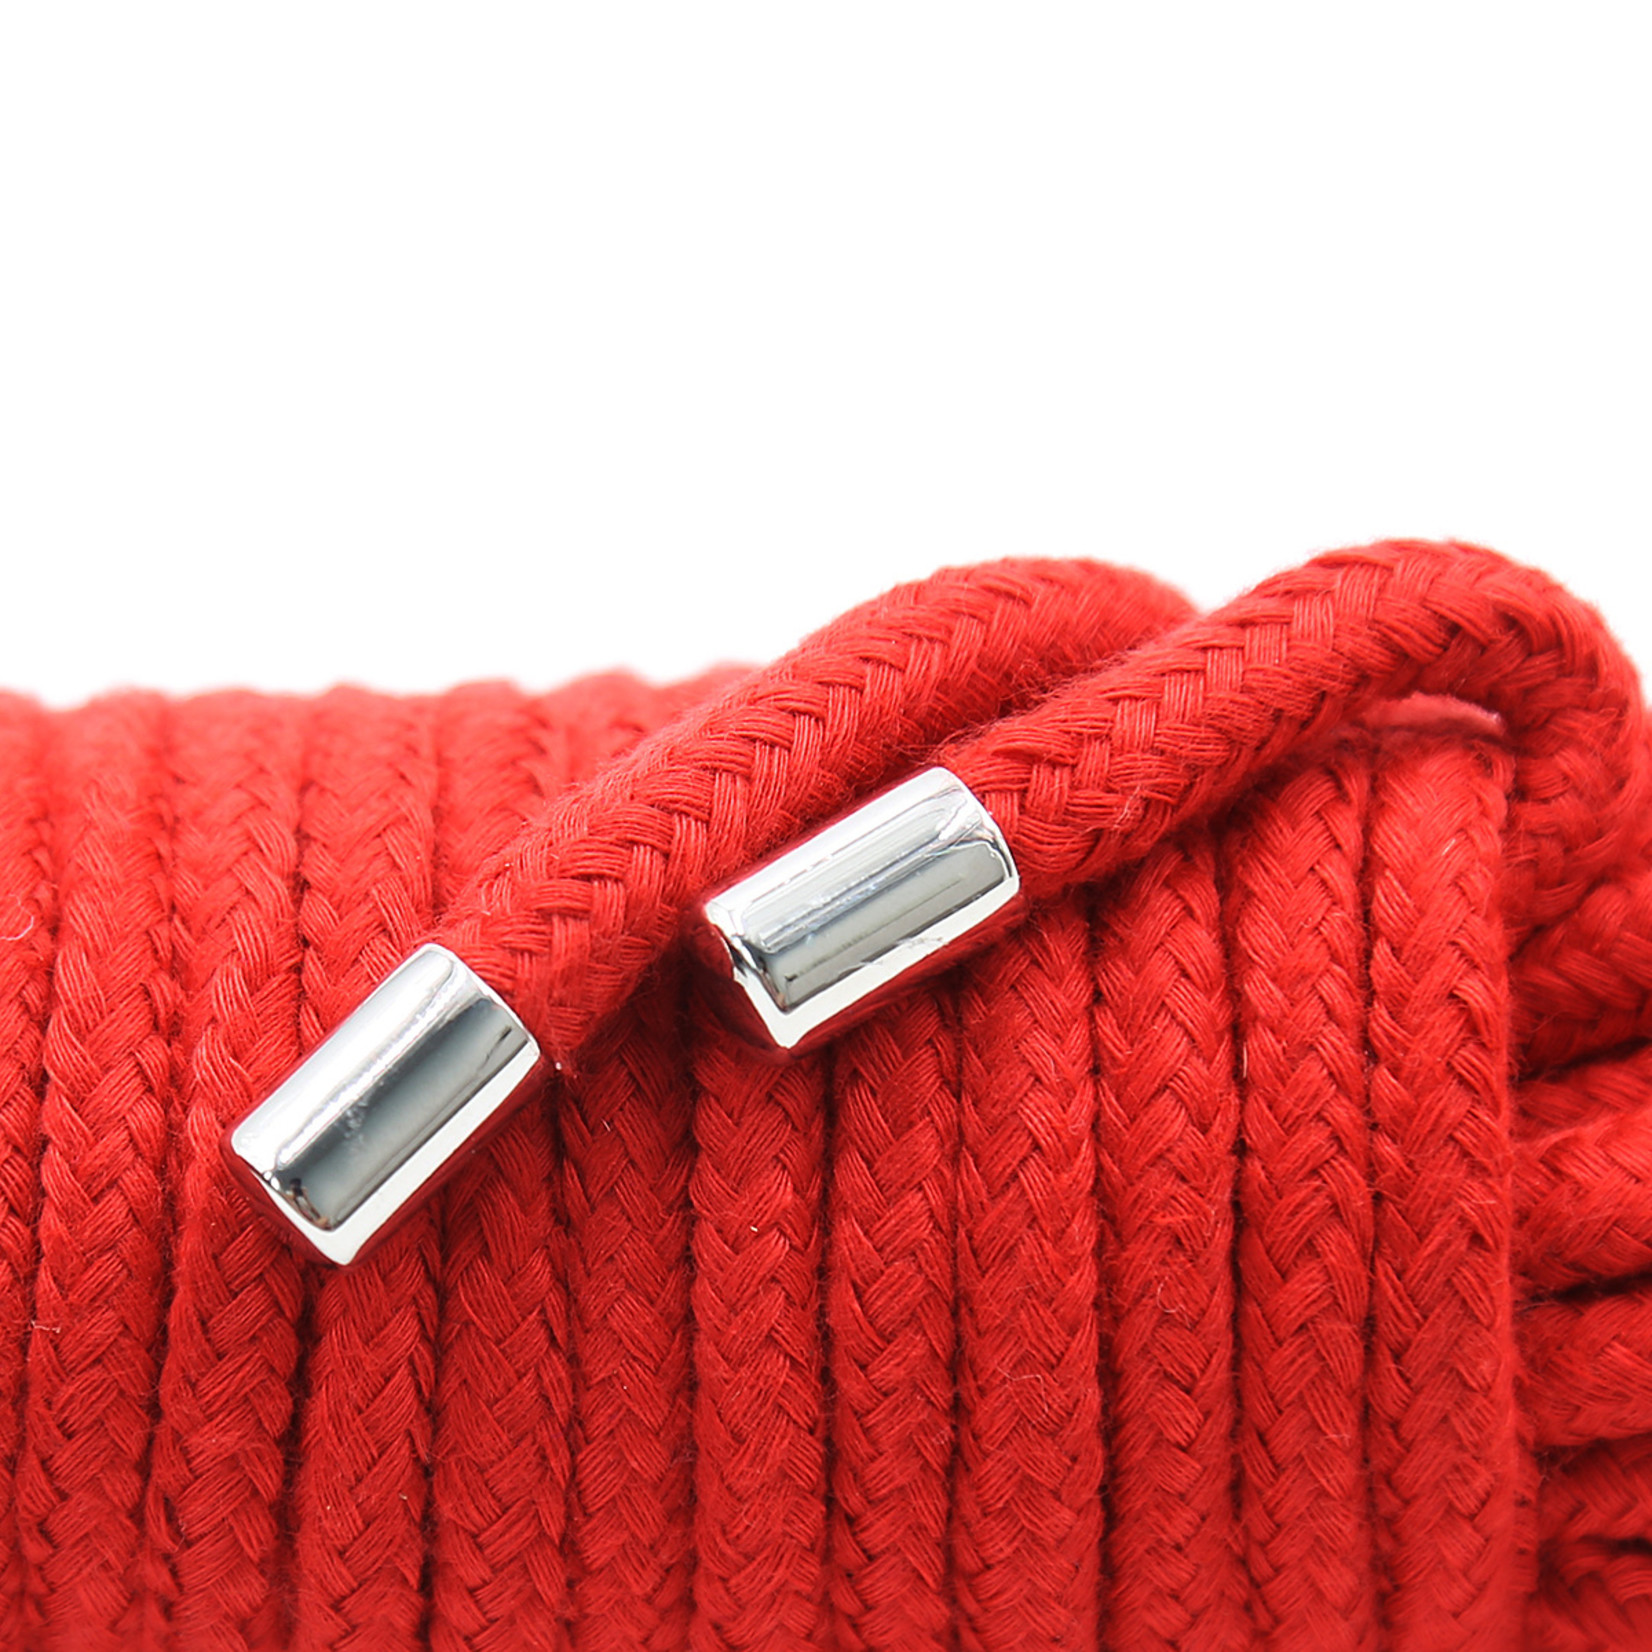 KIOTOS 20 Meter BDSM Cotton Rope Red